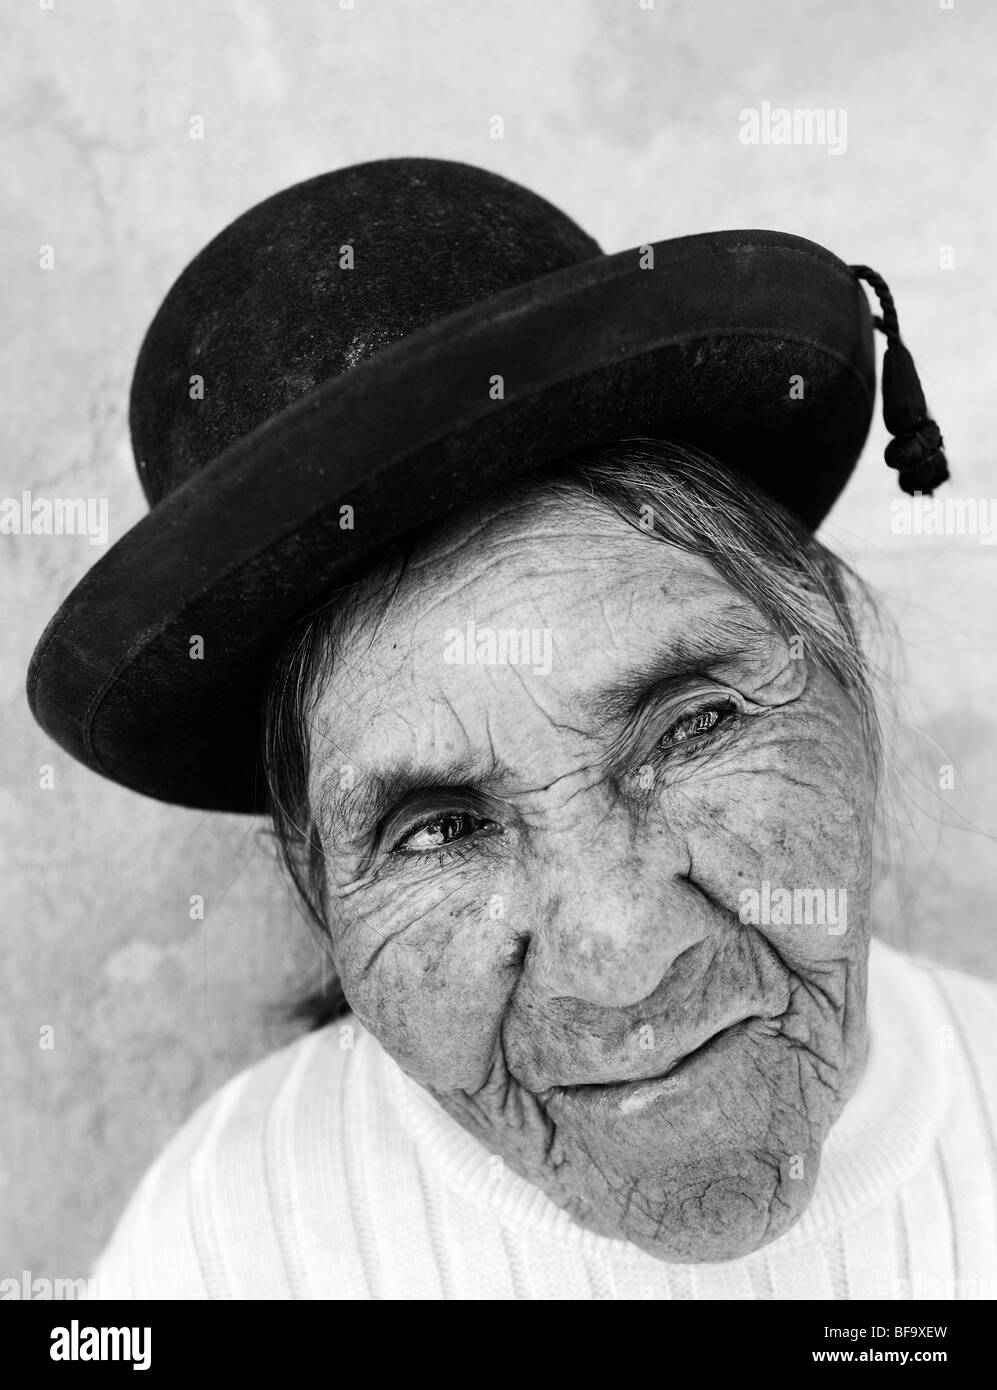 Old Aymara woman with her traditional bowler hat. Salar de Uyuni, Bolivia. - Stock Image